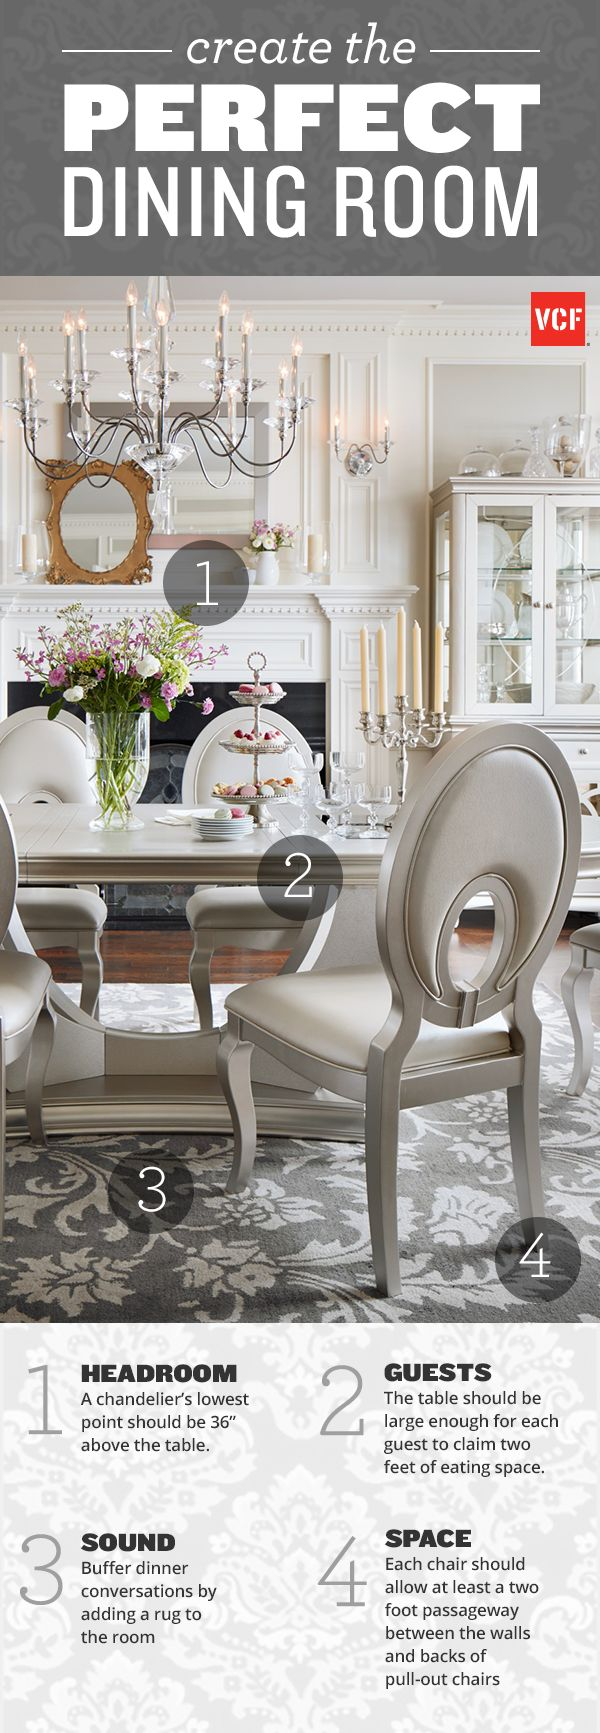 There Are Many Tips And Tricks To Create The Perfect Space For Dining